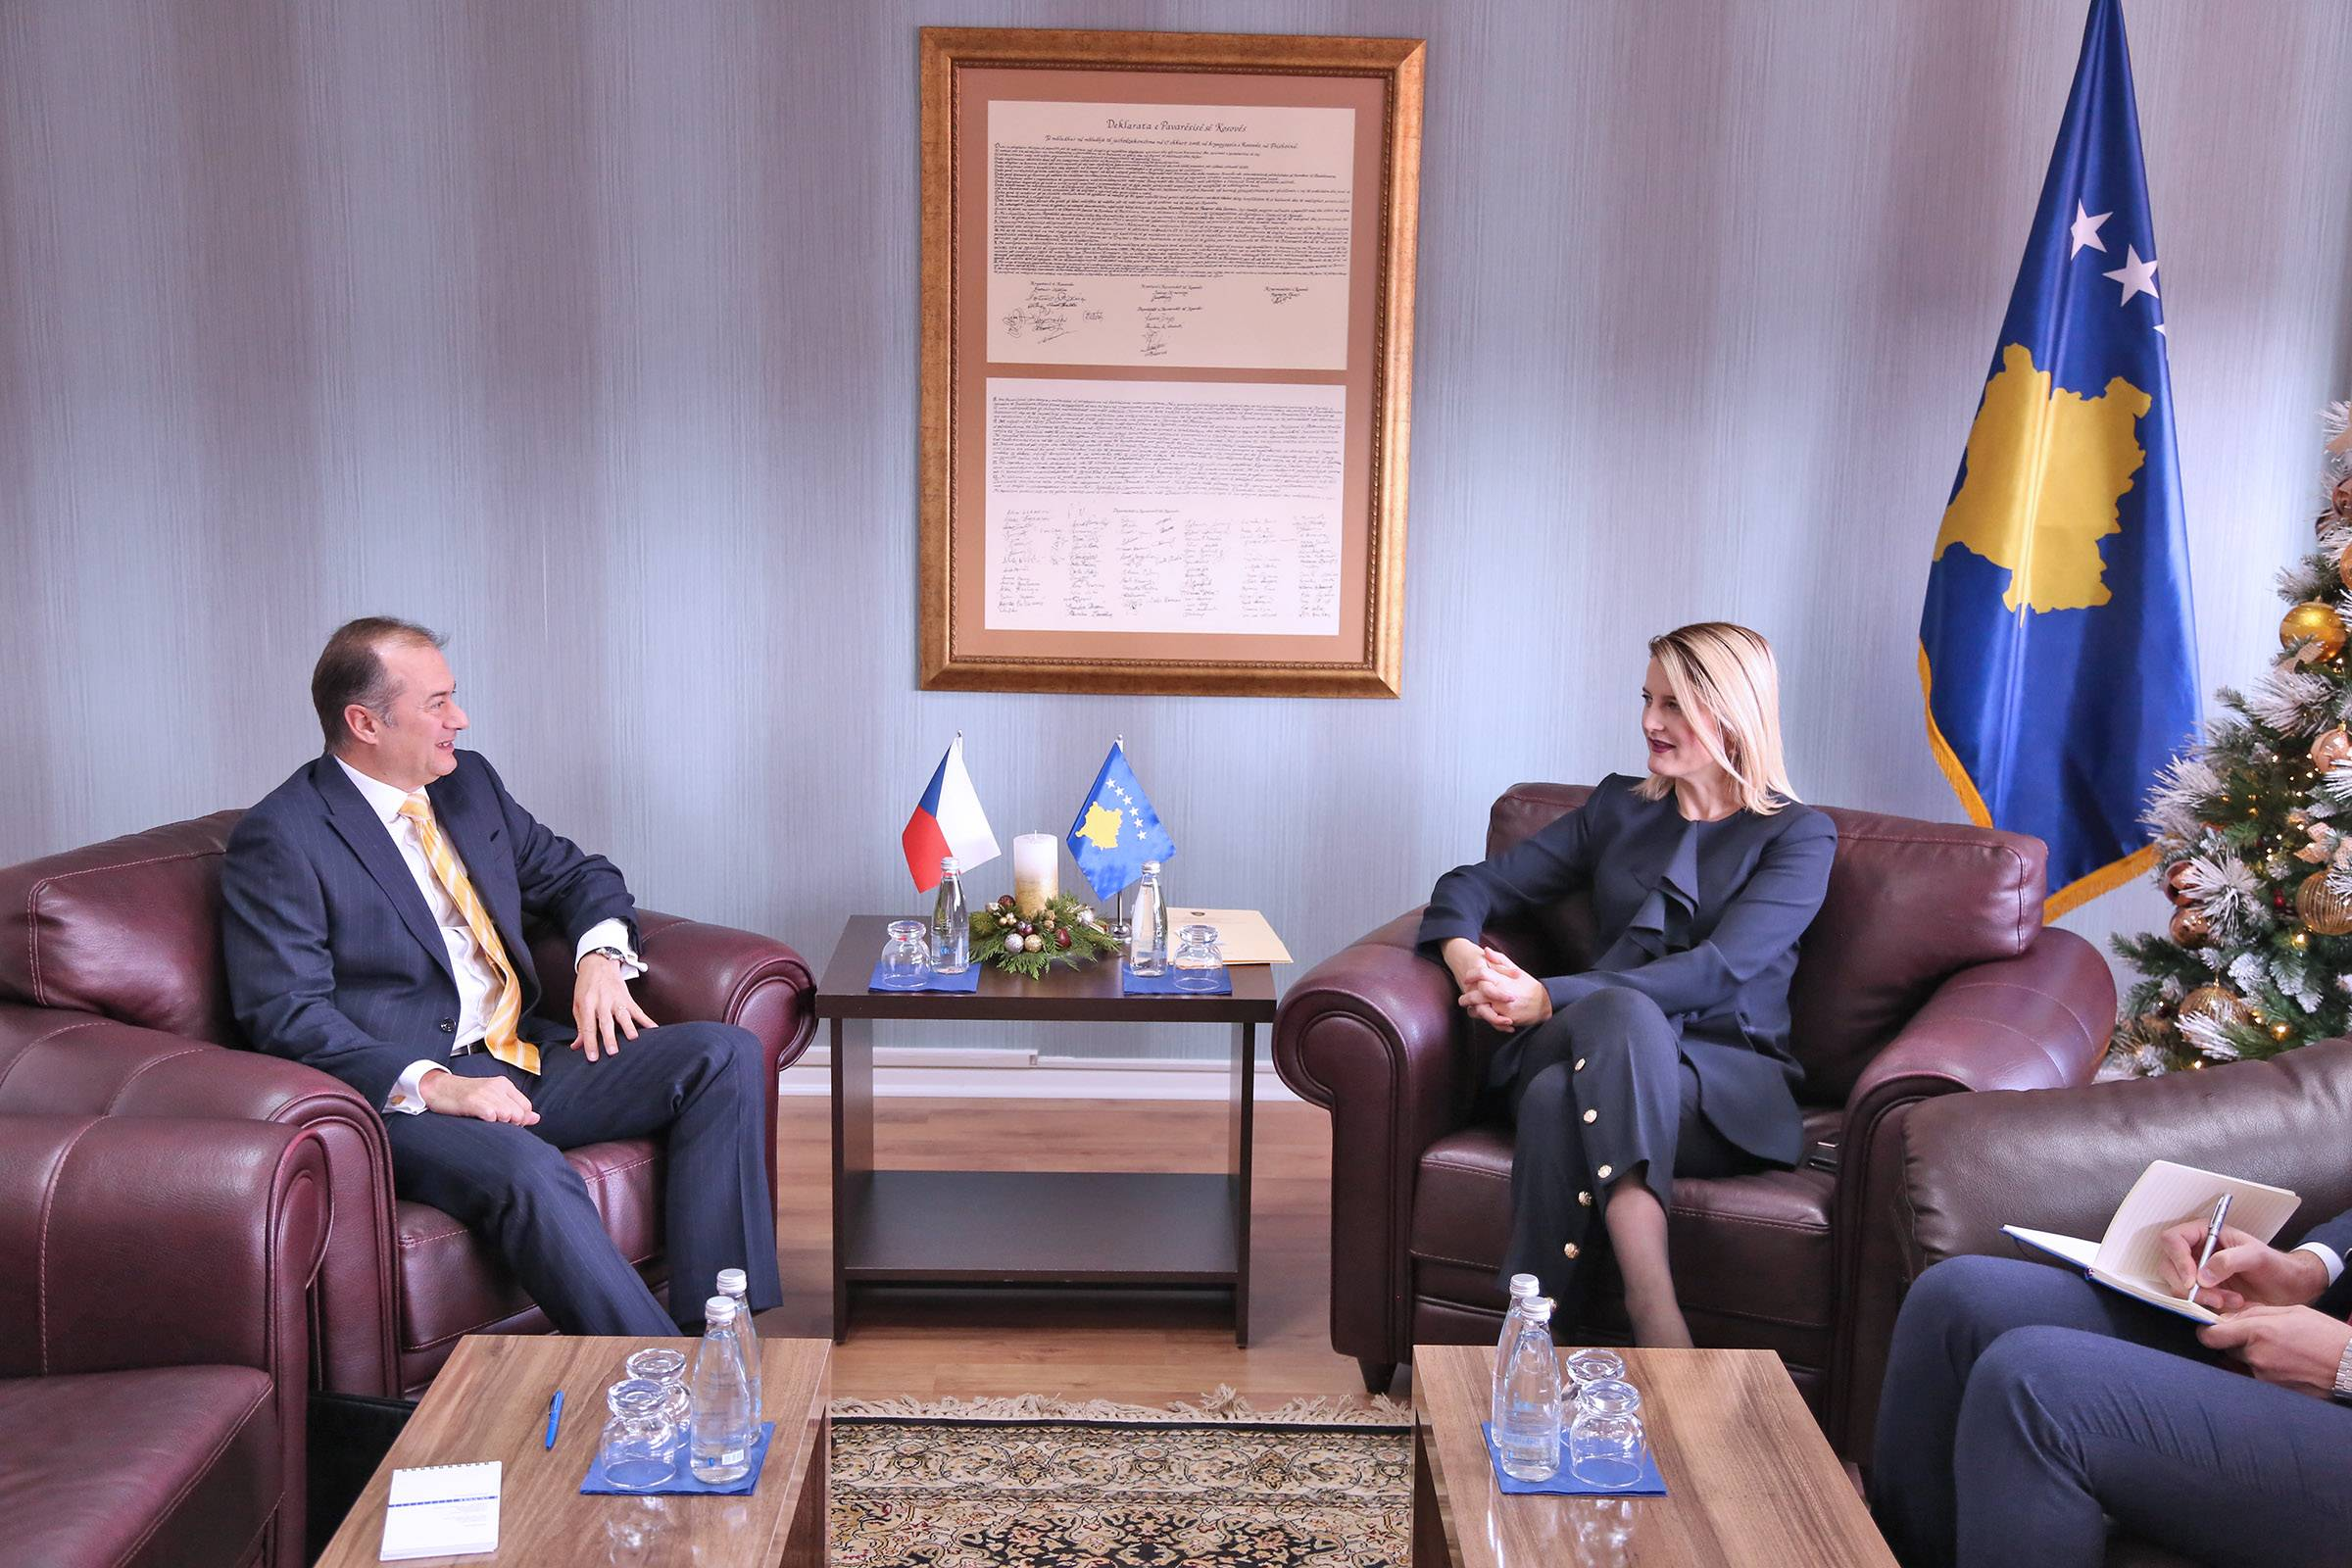 Minister Hoxha: The Czech support is important to Kosovo